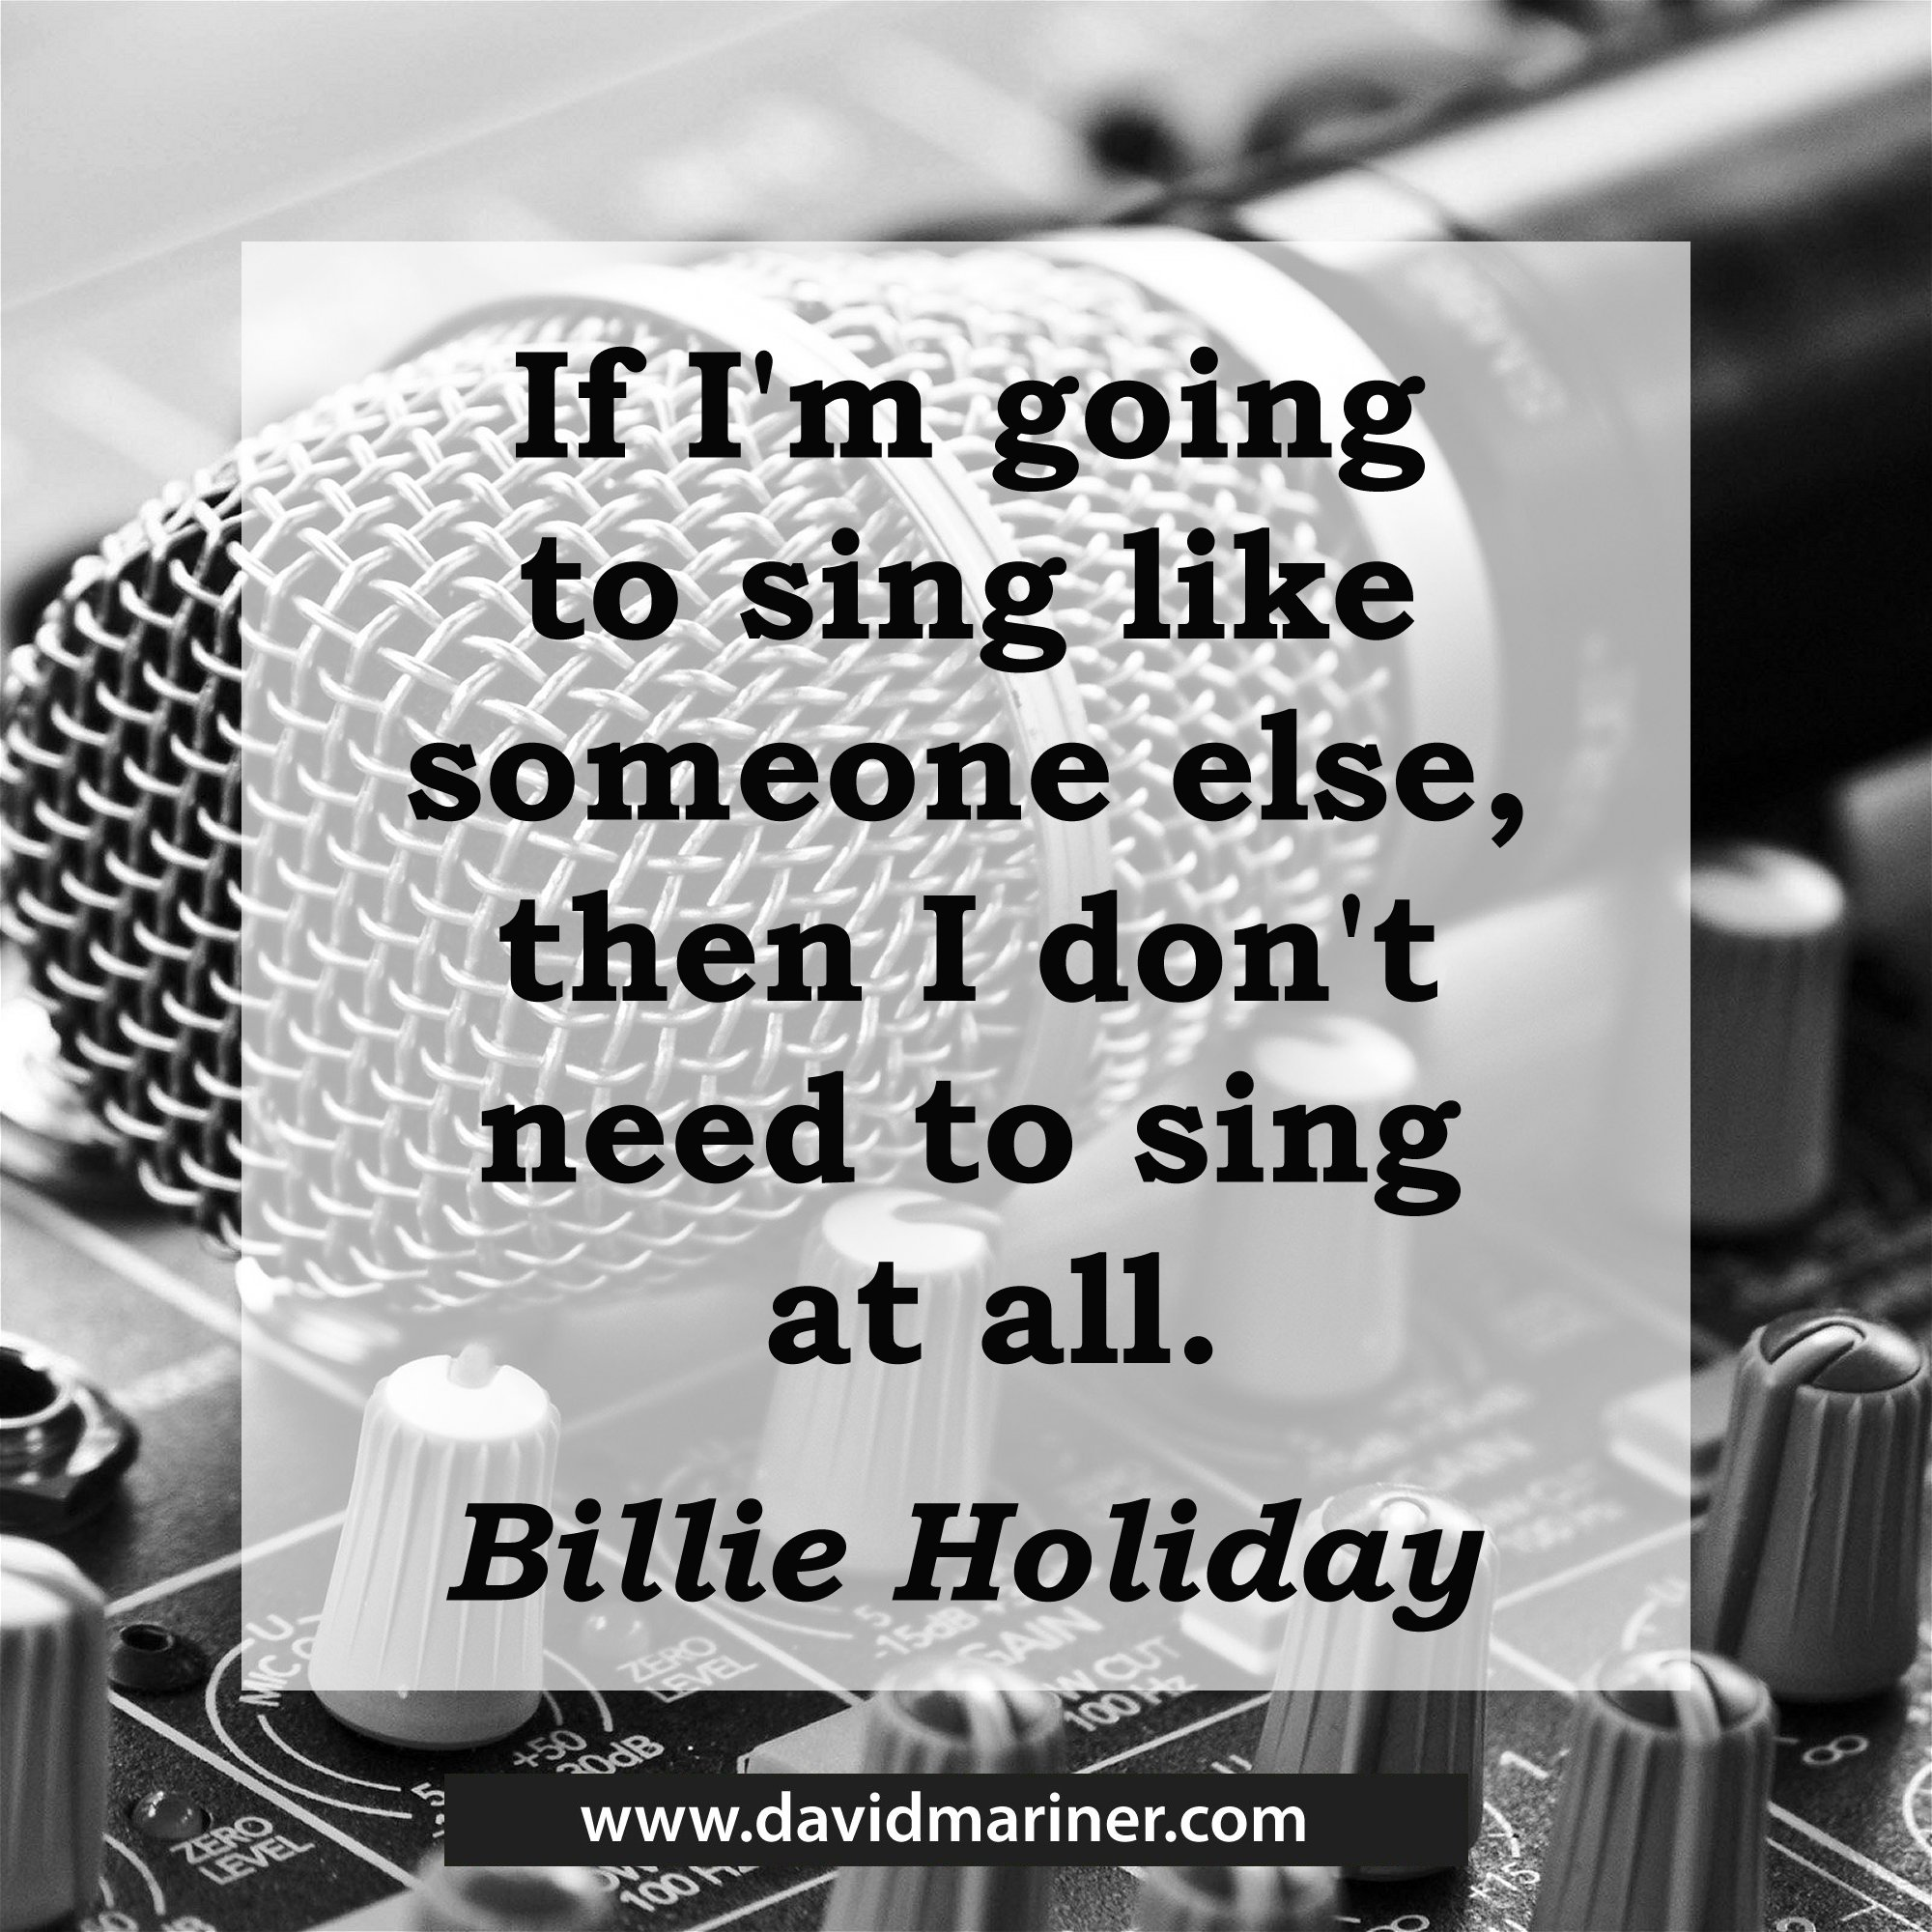 If I'm going to sing like someone else, then I don't need to sing at all.